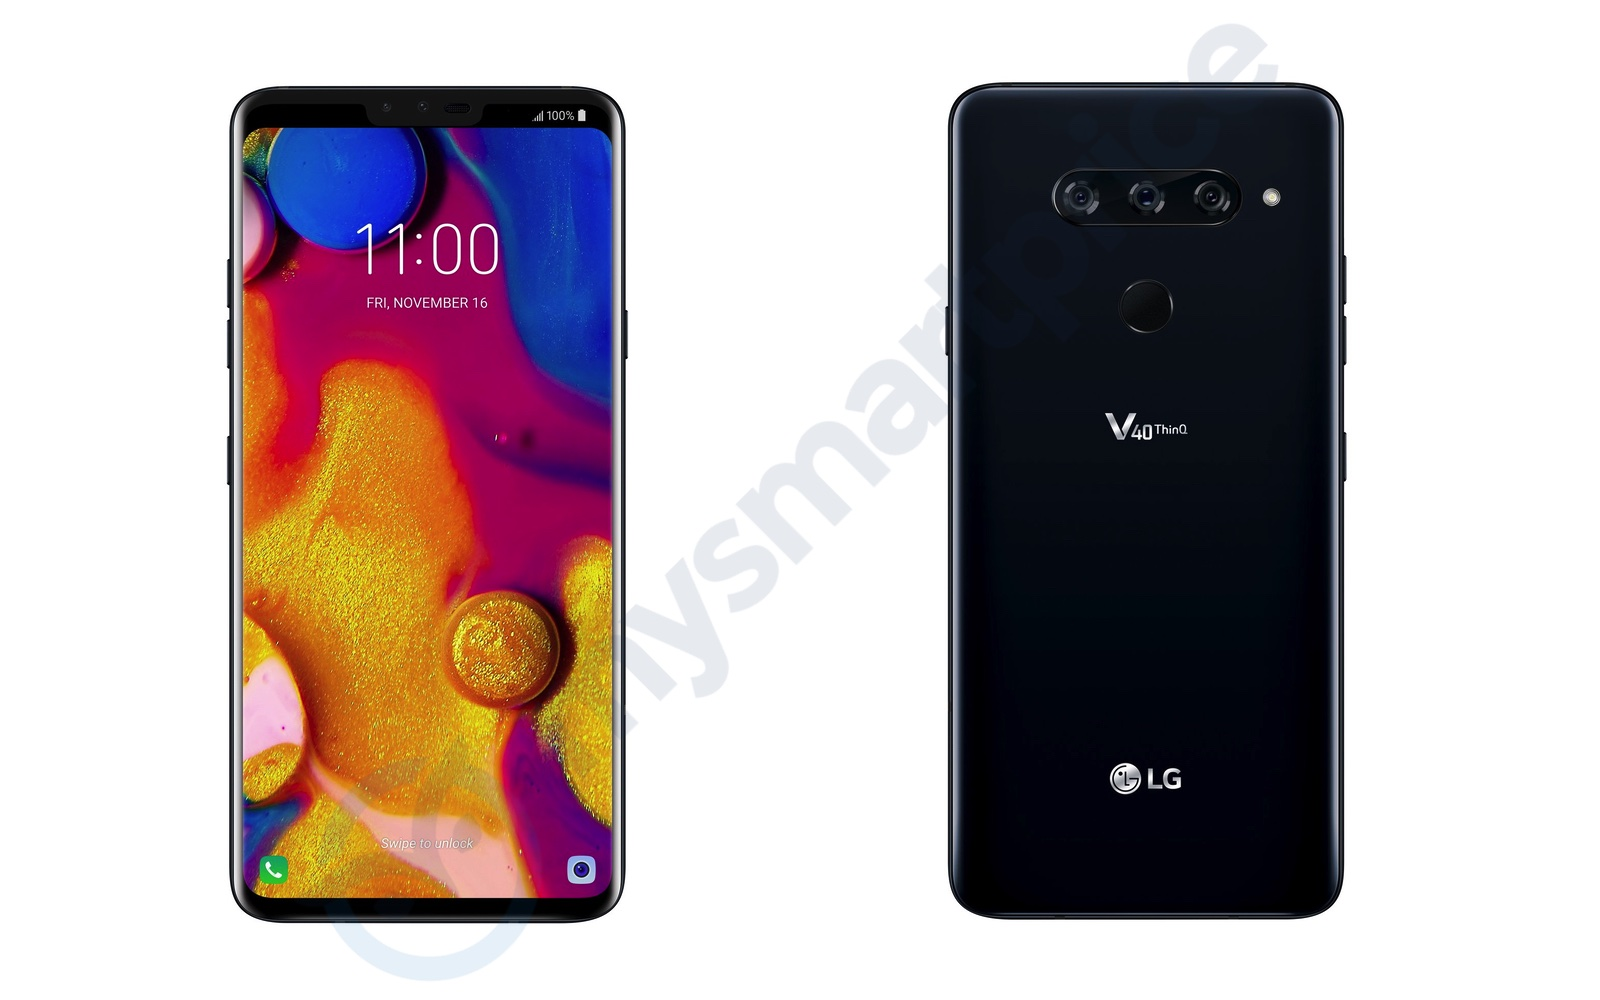 Update: AT&T model leaked] LG V40 ThinQ leak shows off triple